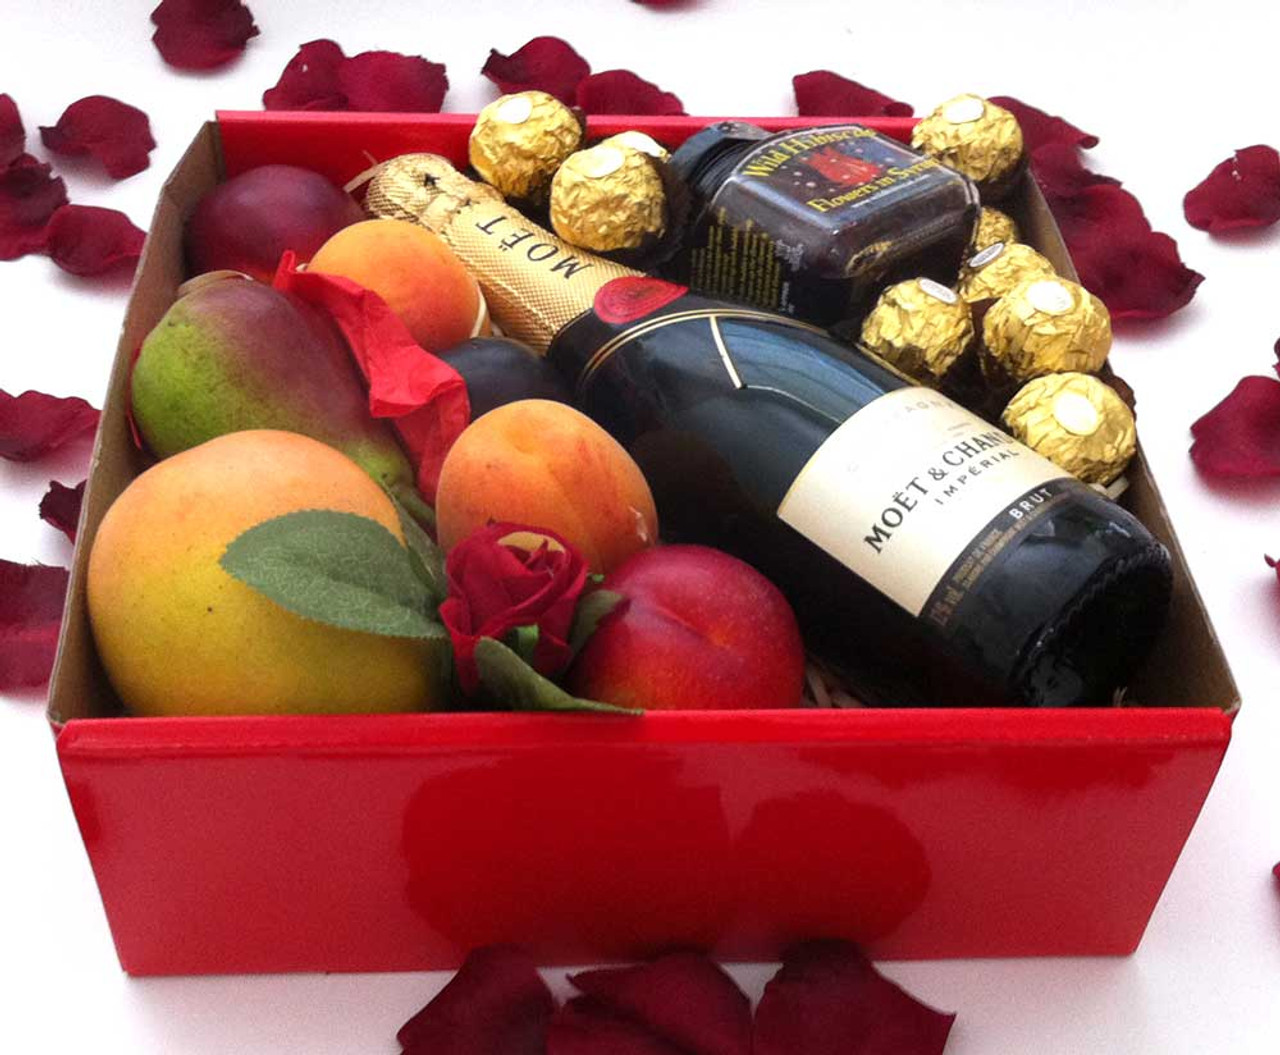 Chandon piccolo 200ml red gift box wild hibiscus flowers chocolates moet chandon piccolo 200ml red gift box wild hibiscus flowers chocolates izmirmasajfo Image collections